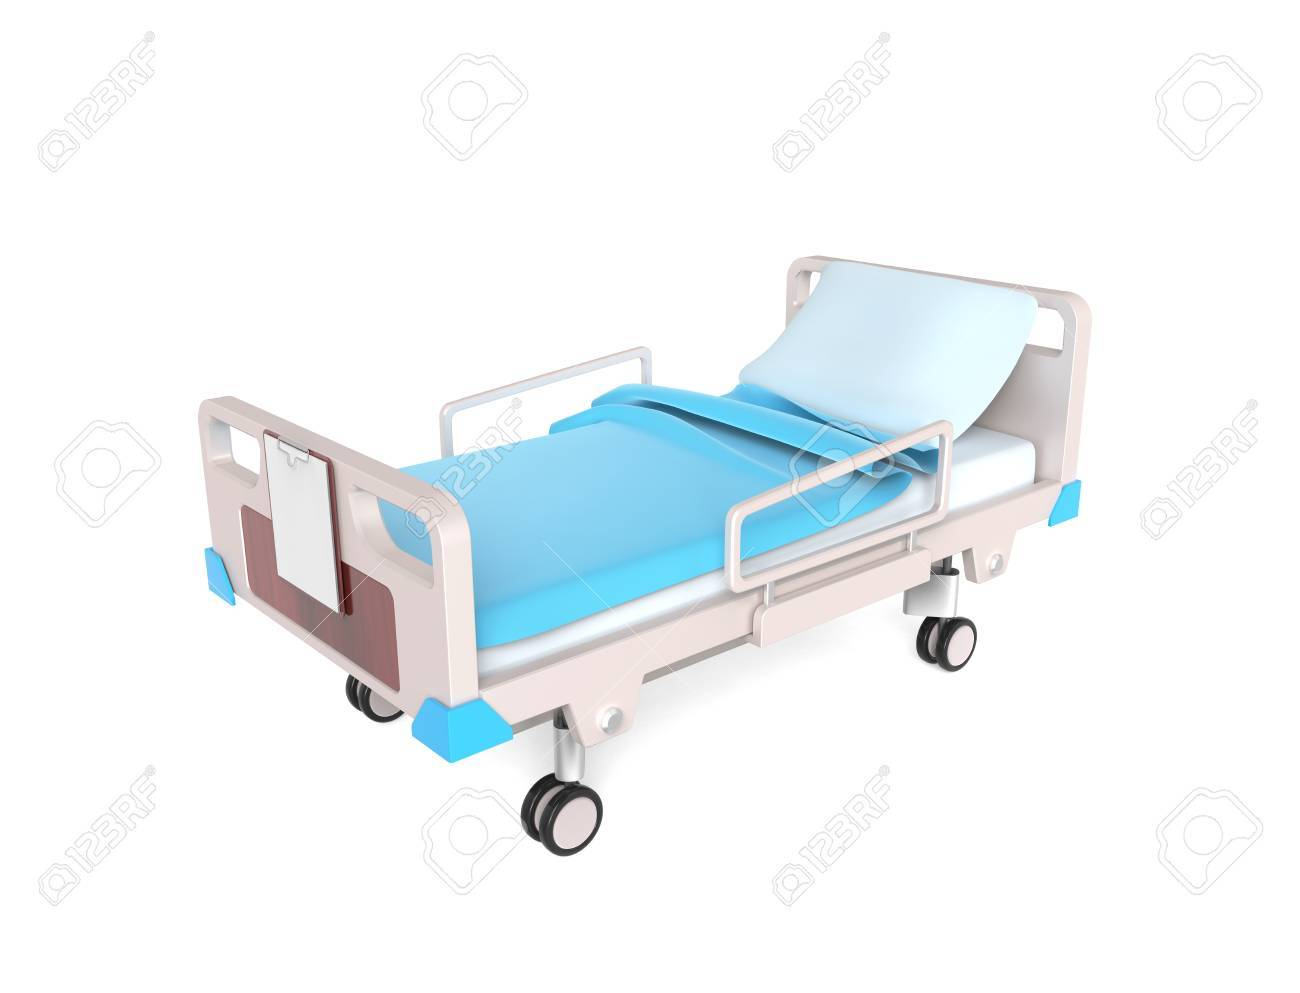 3D little medical bed isolated on white - 43236442